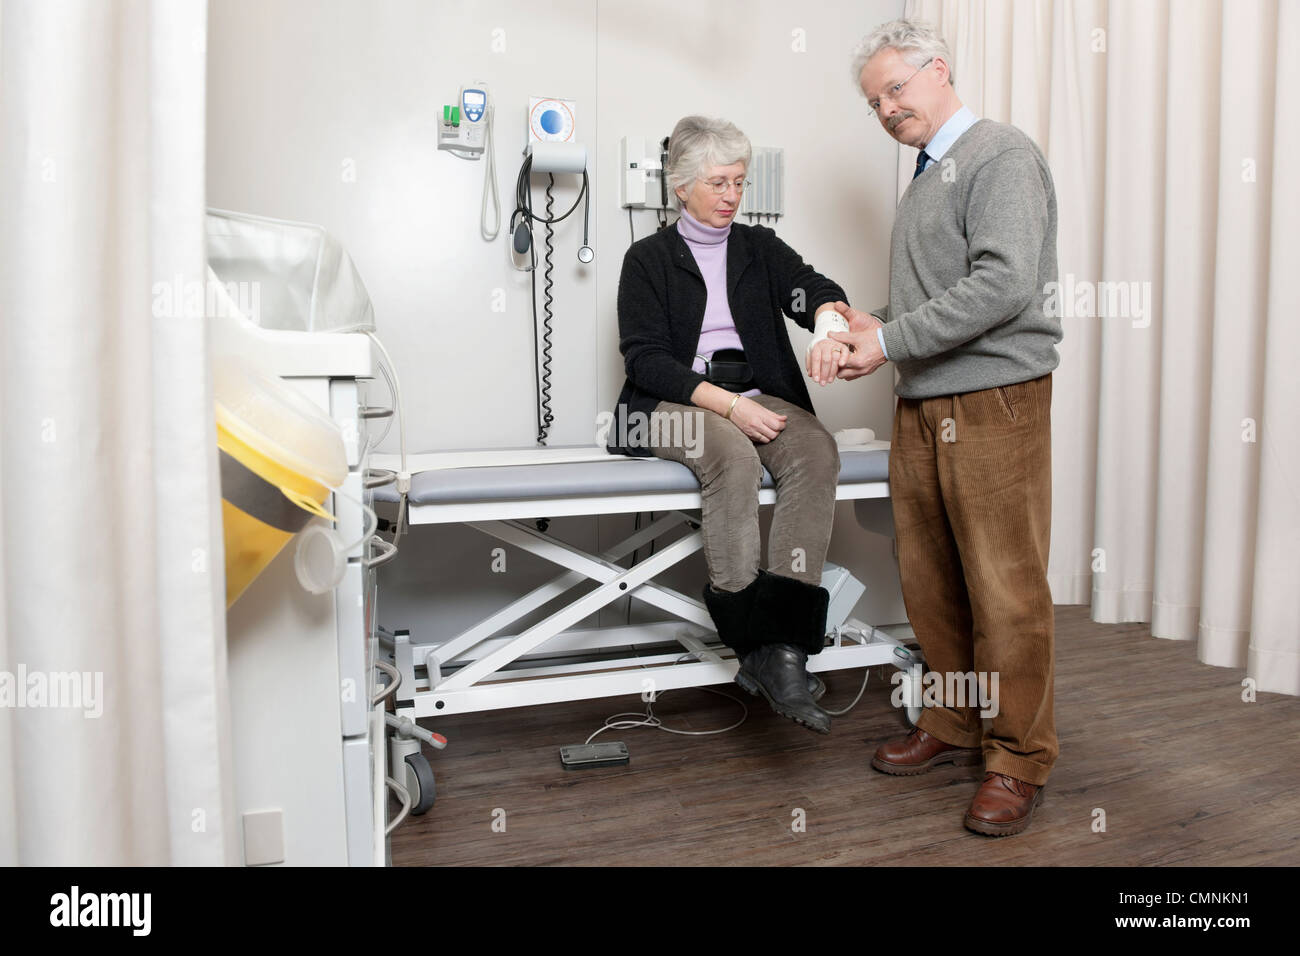 General Practitioner posing in his practice, whilst examining the bandaged sprained wrist of a middle aged woman - Stock Image